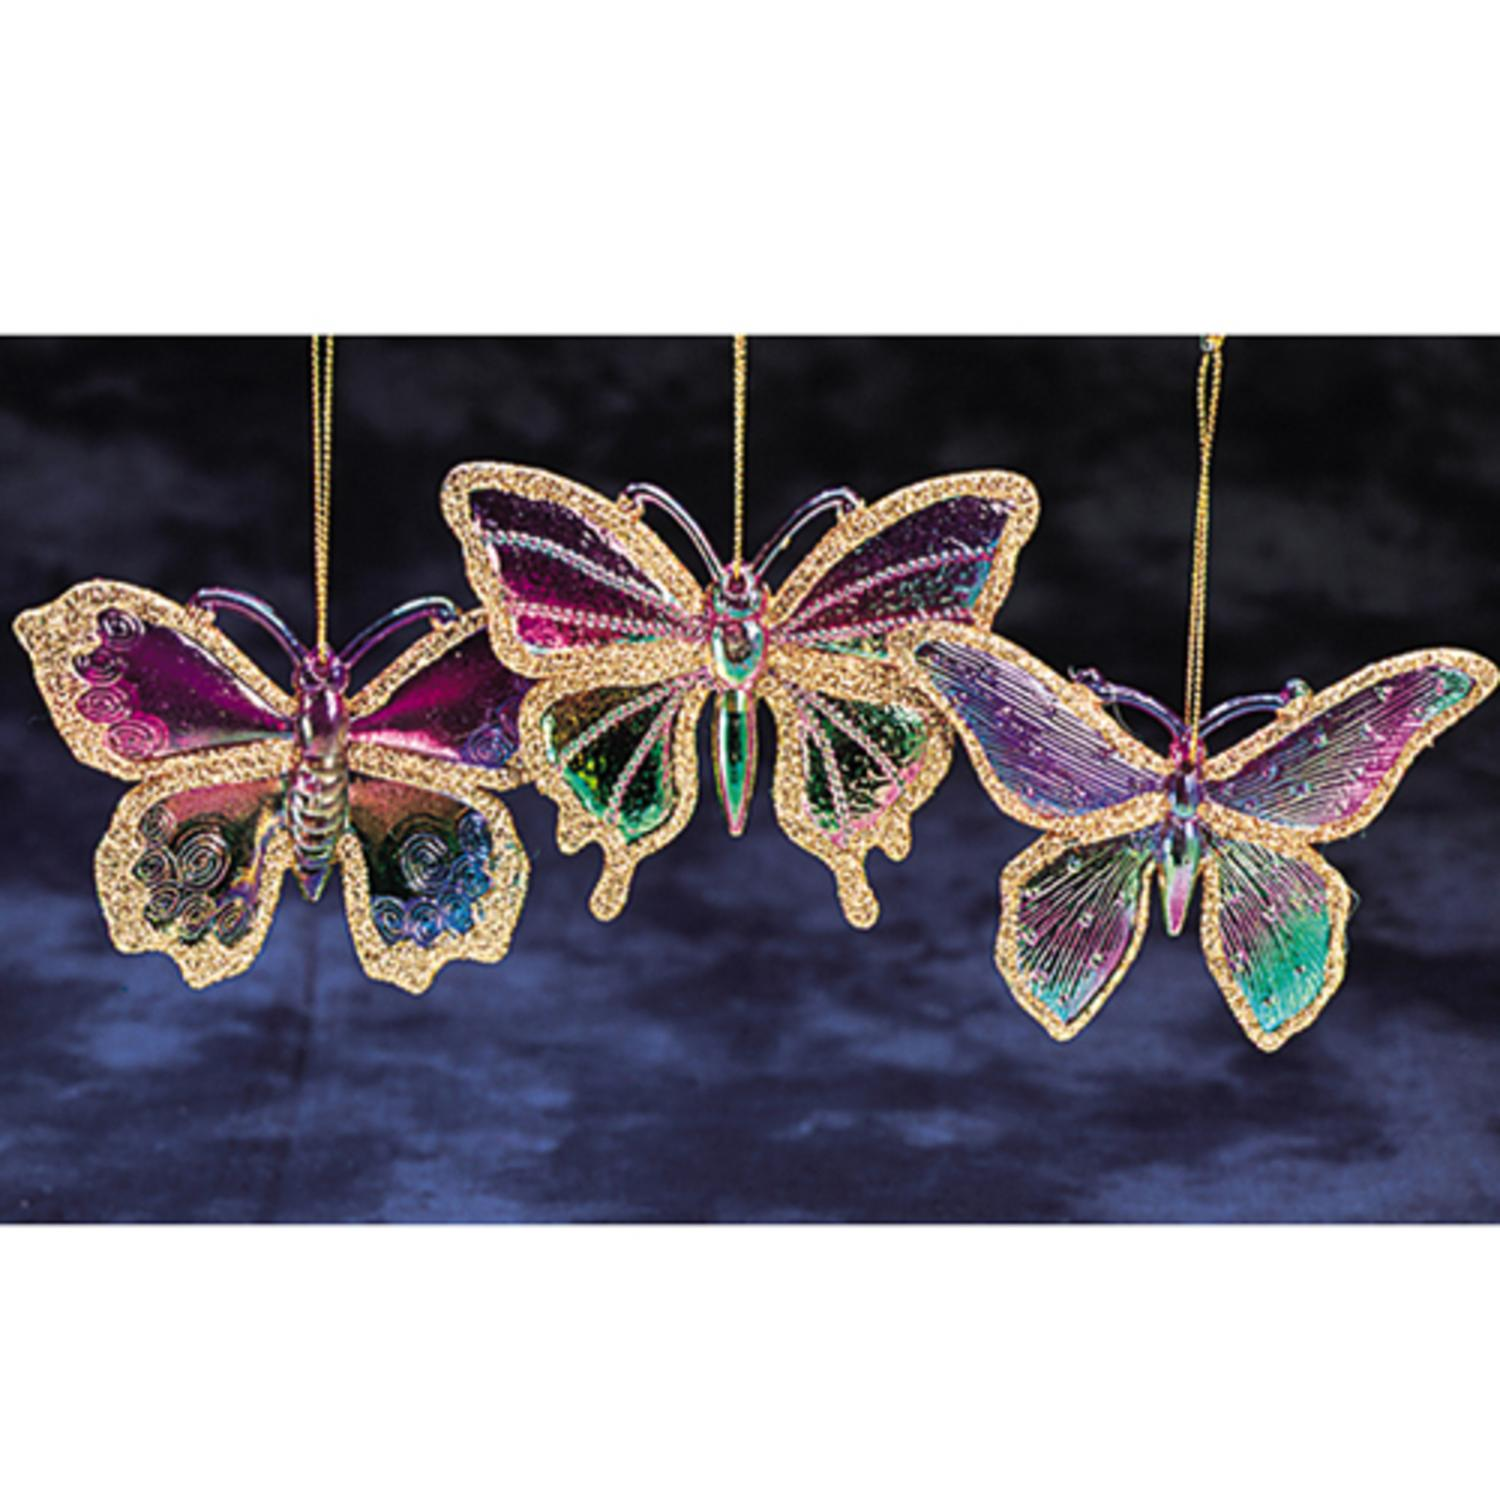 Pack of 36 Princess Garden Iridescent & Glitter Butterfly Christmas Ornaments